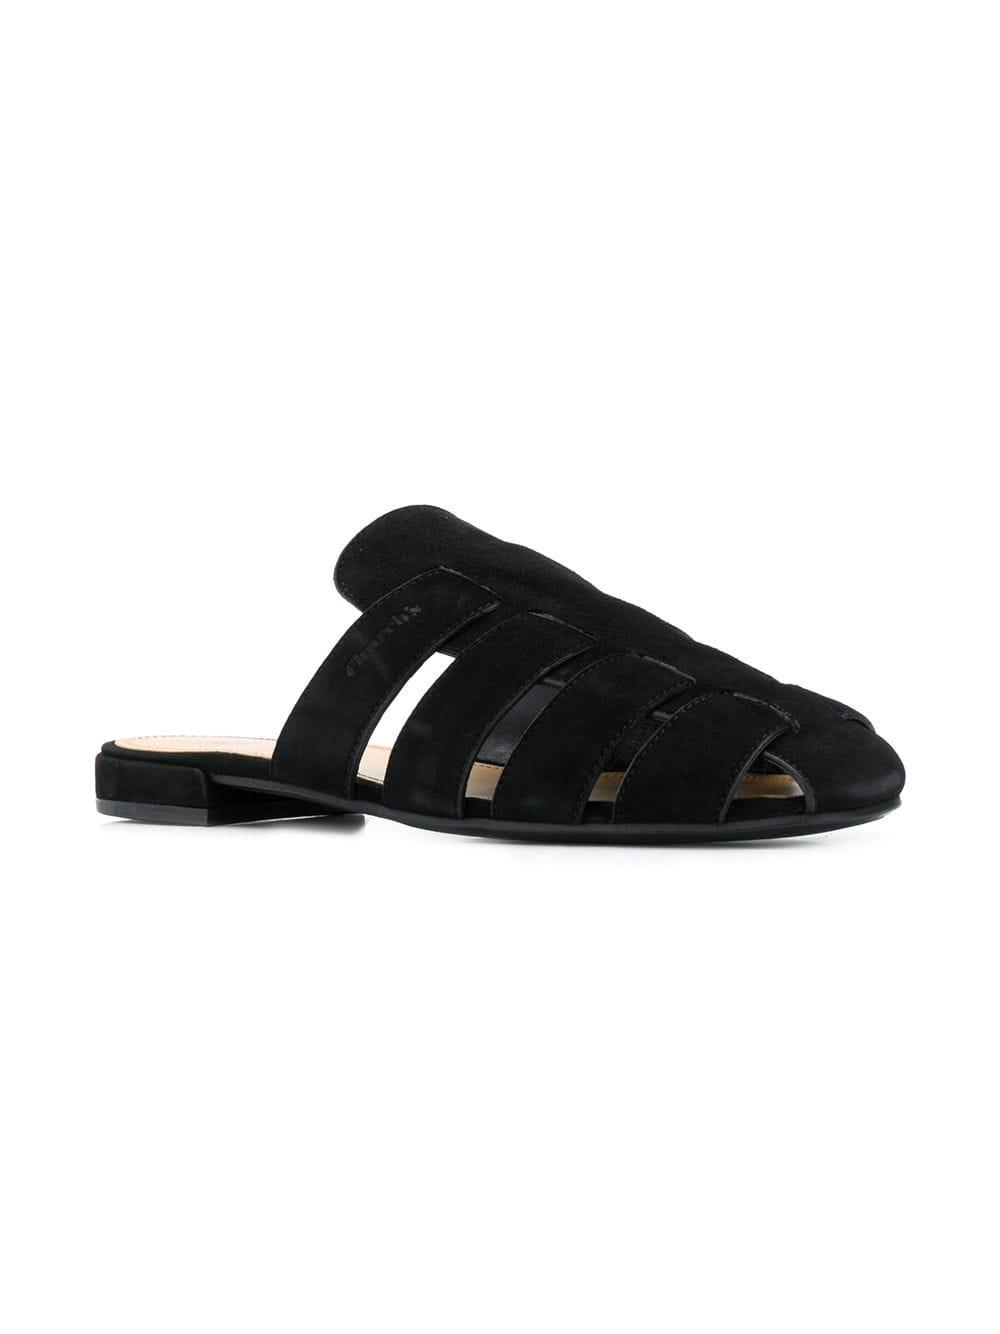 0390f29552a6 Lyst - Church S Leather Mule Slides in Black